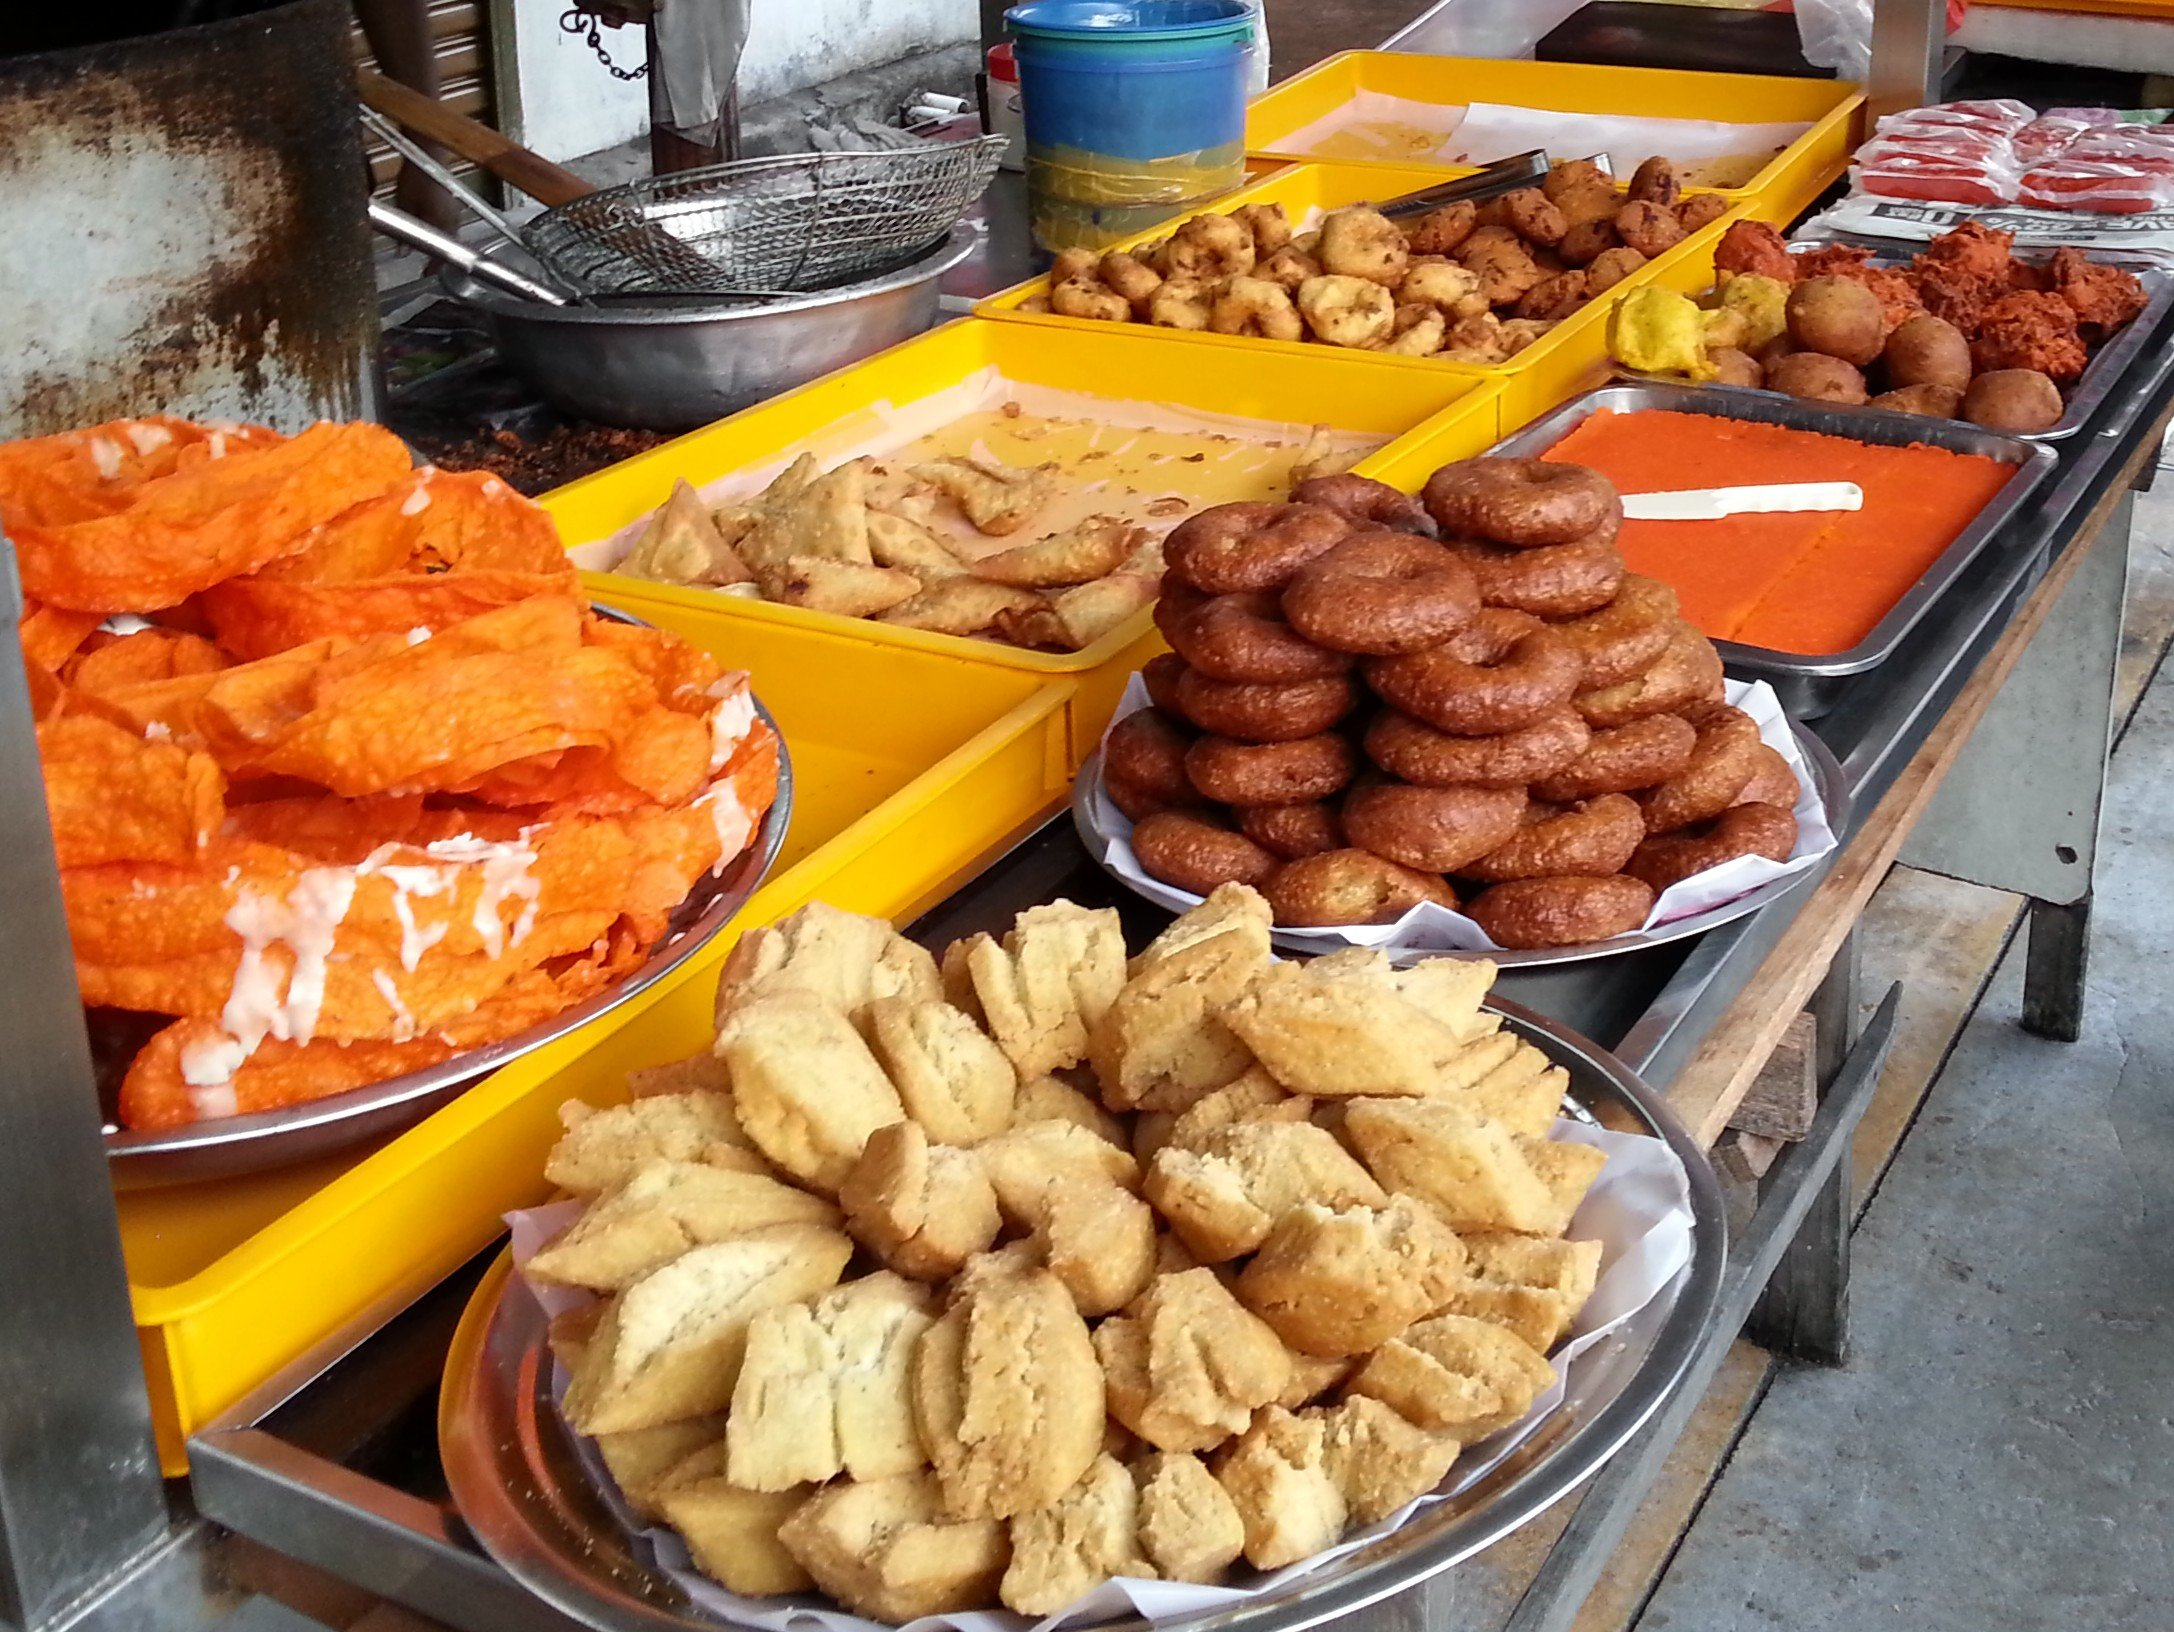 Samosa, onion bhaji and other snacks on sale in Little India